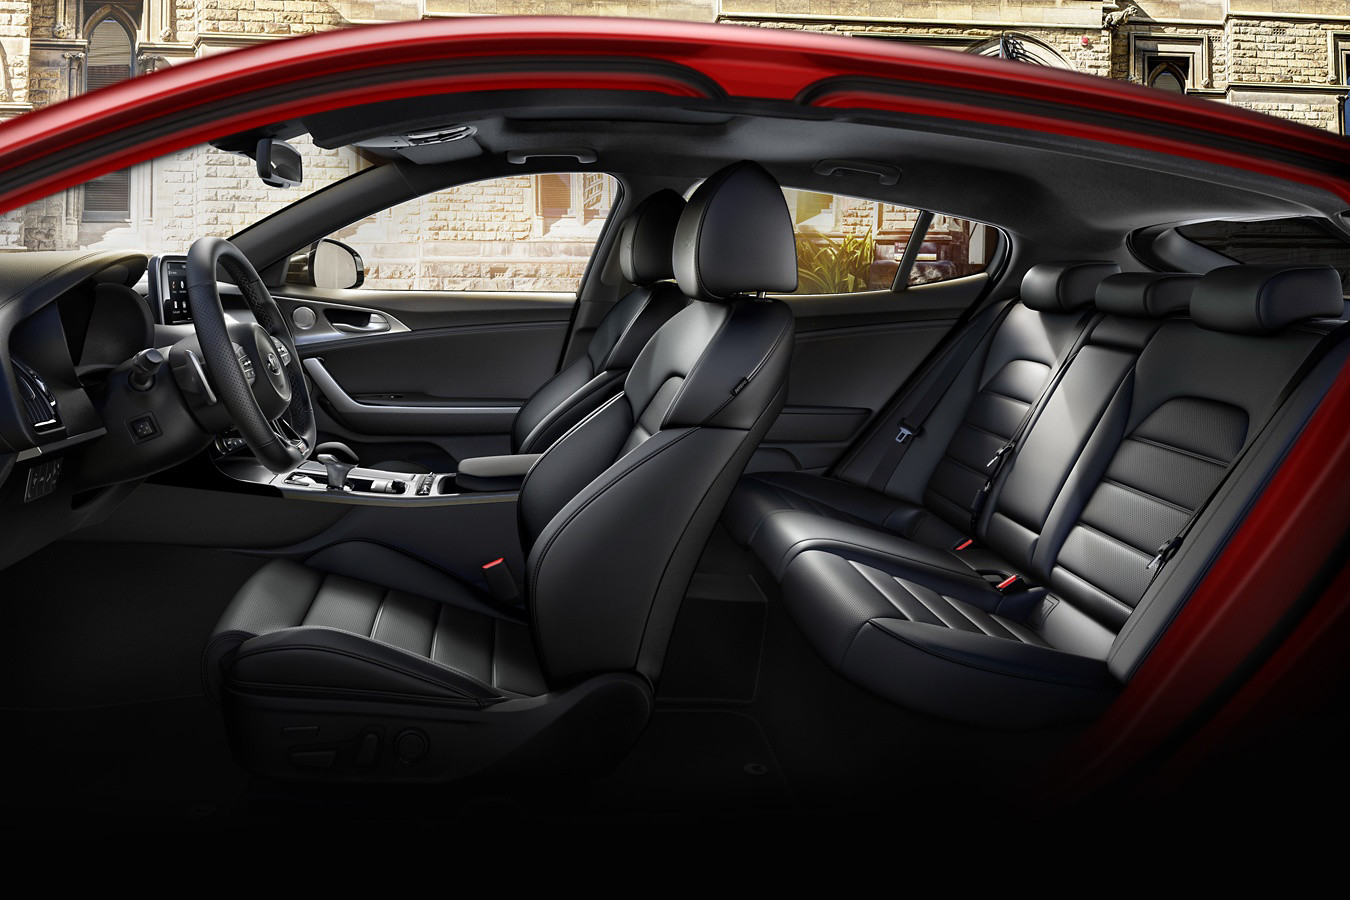 Interior of the 2019 Stinger